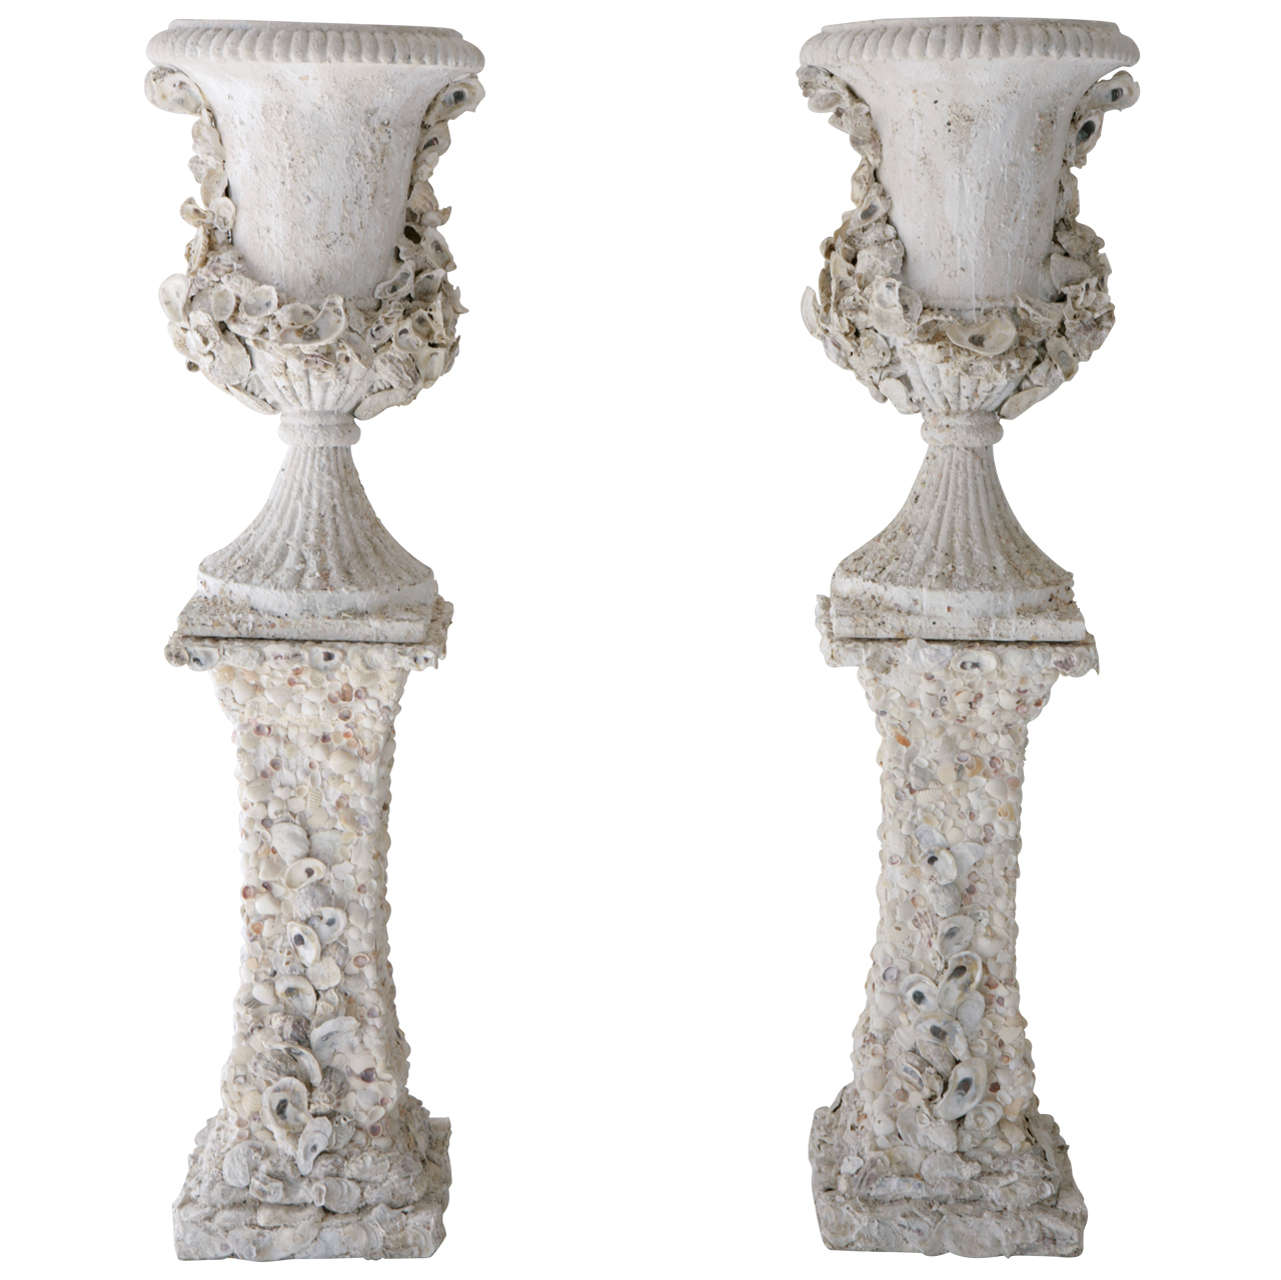 Grotto Style Shell Encrusted Urns on Pedestals 1